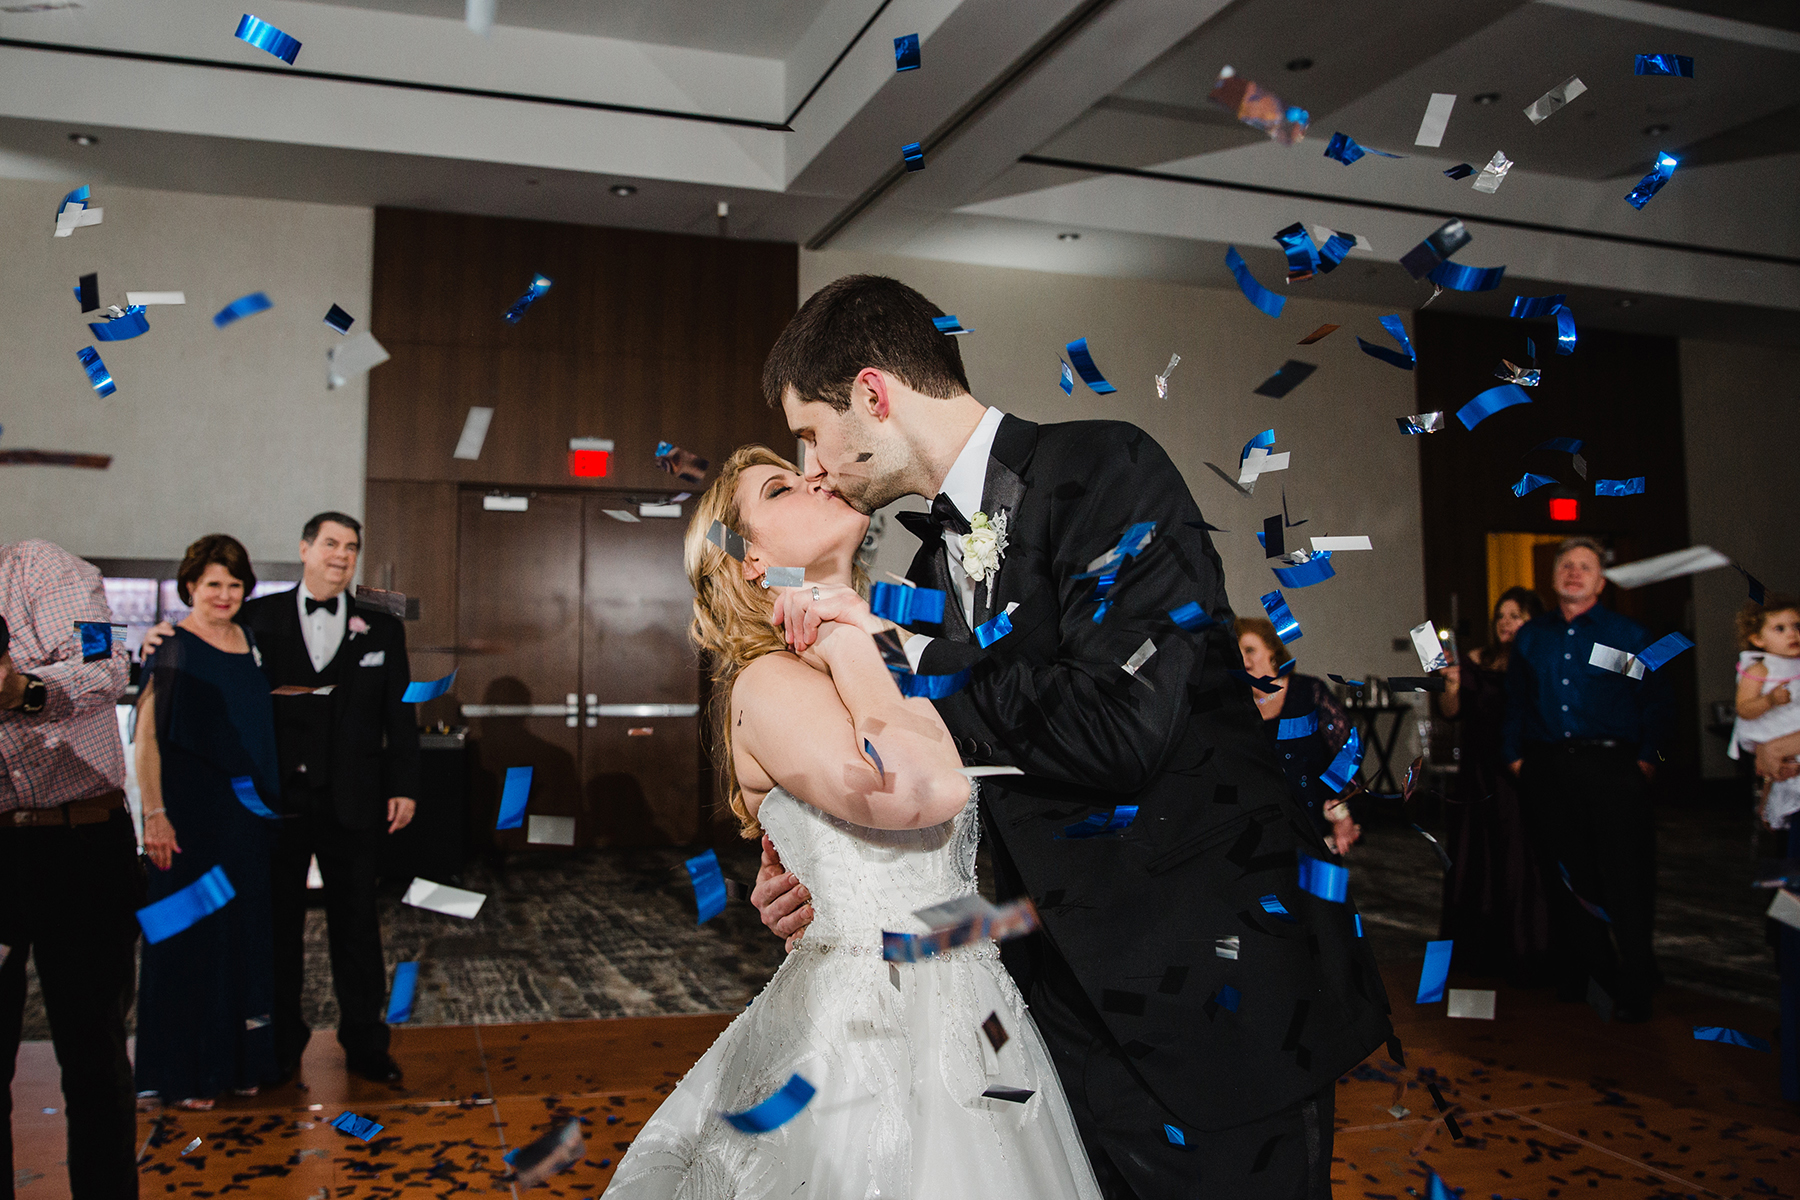 Traci_and_Ryan_Wedding-740.jpg